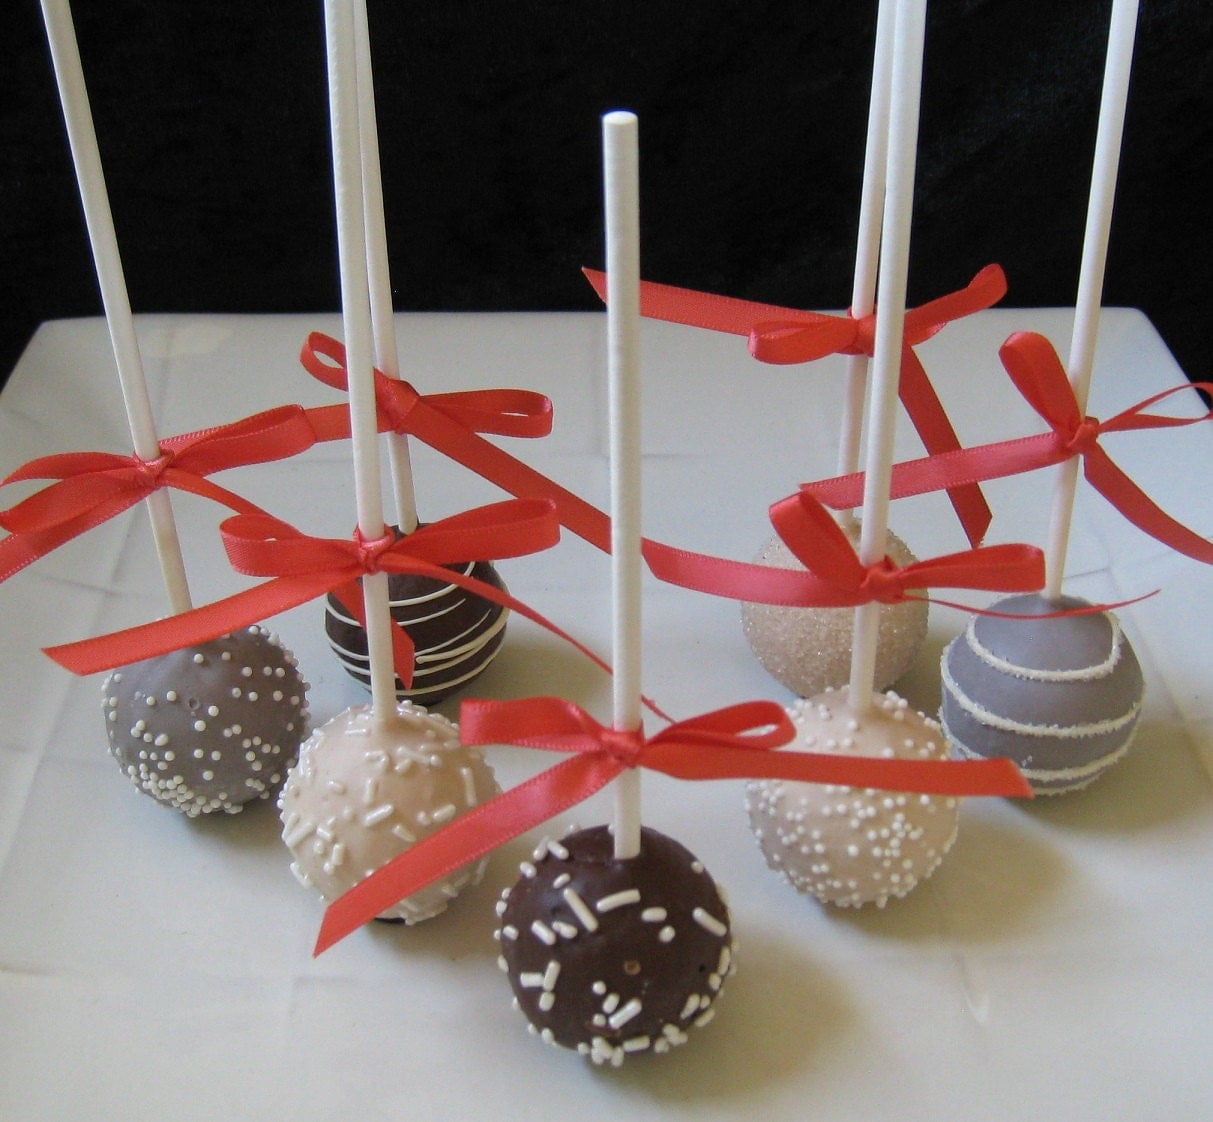 Fall Wedding Favors Wedding Cake Pops Made by